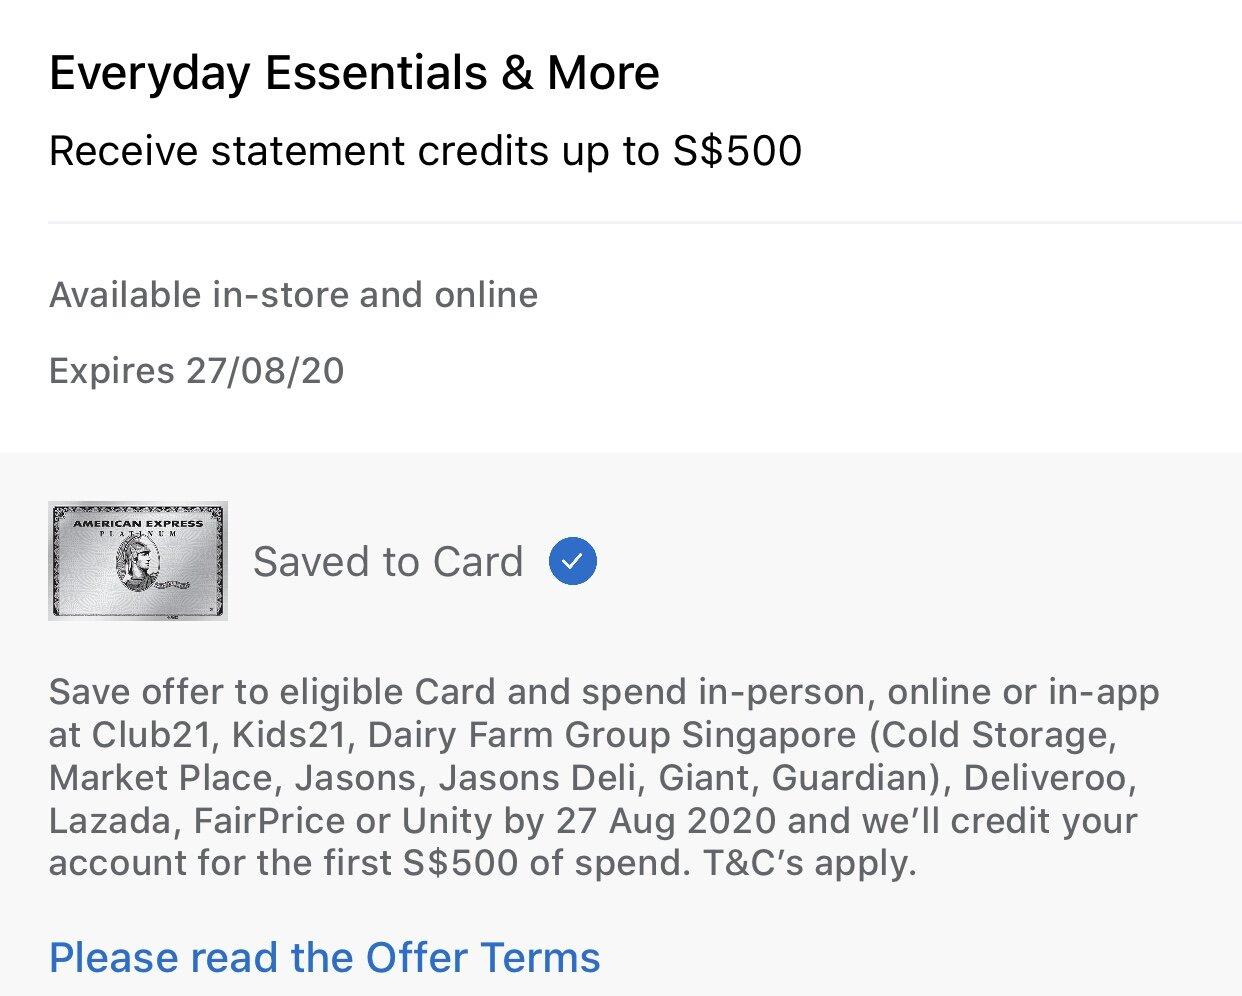 American Express Offering S$10 Statement Credit for Everyday